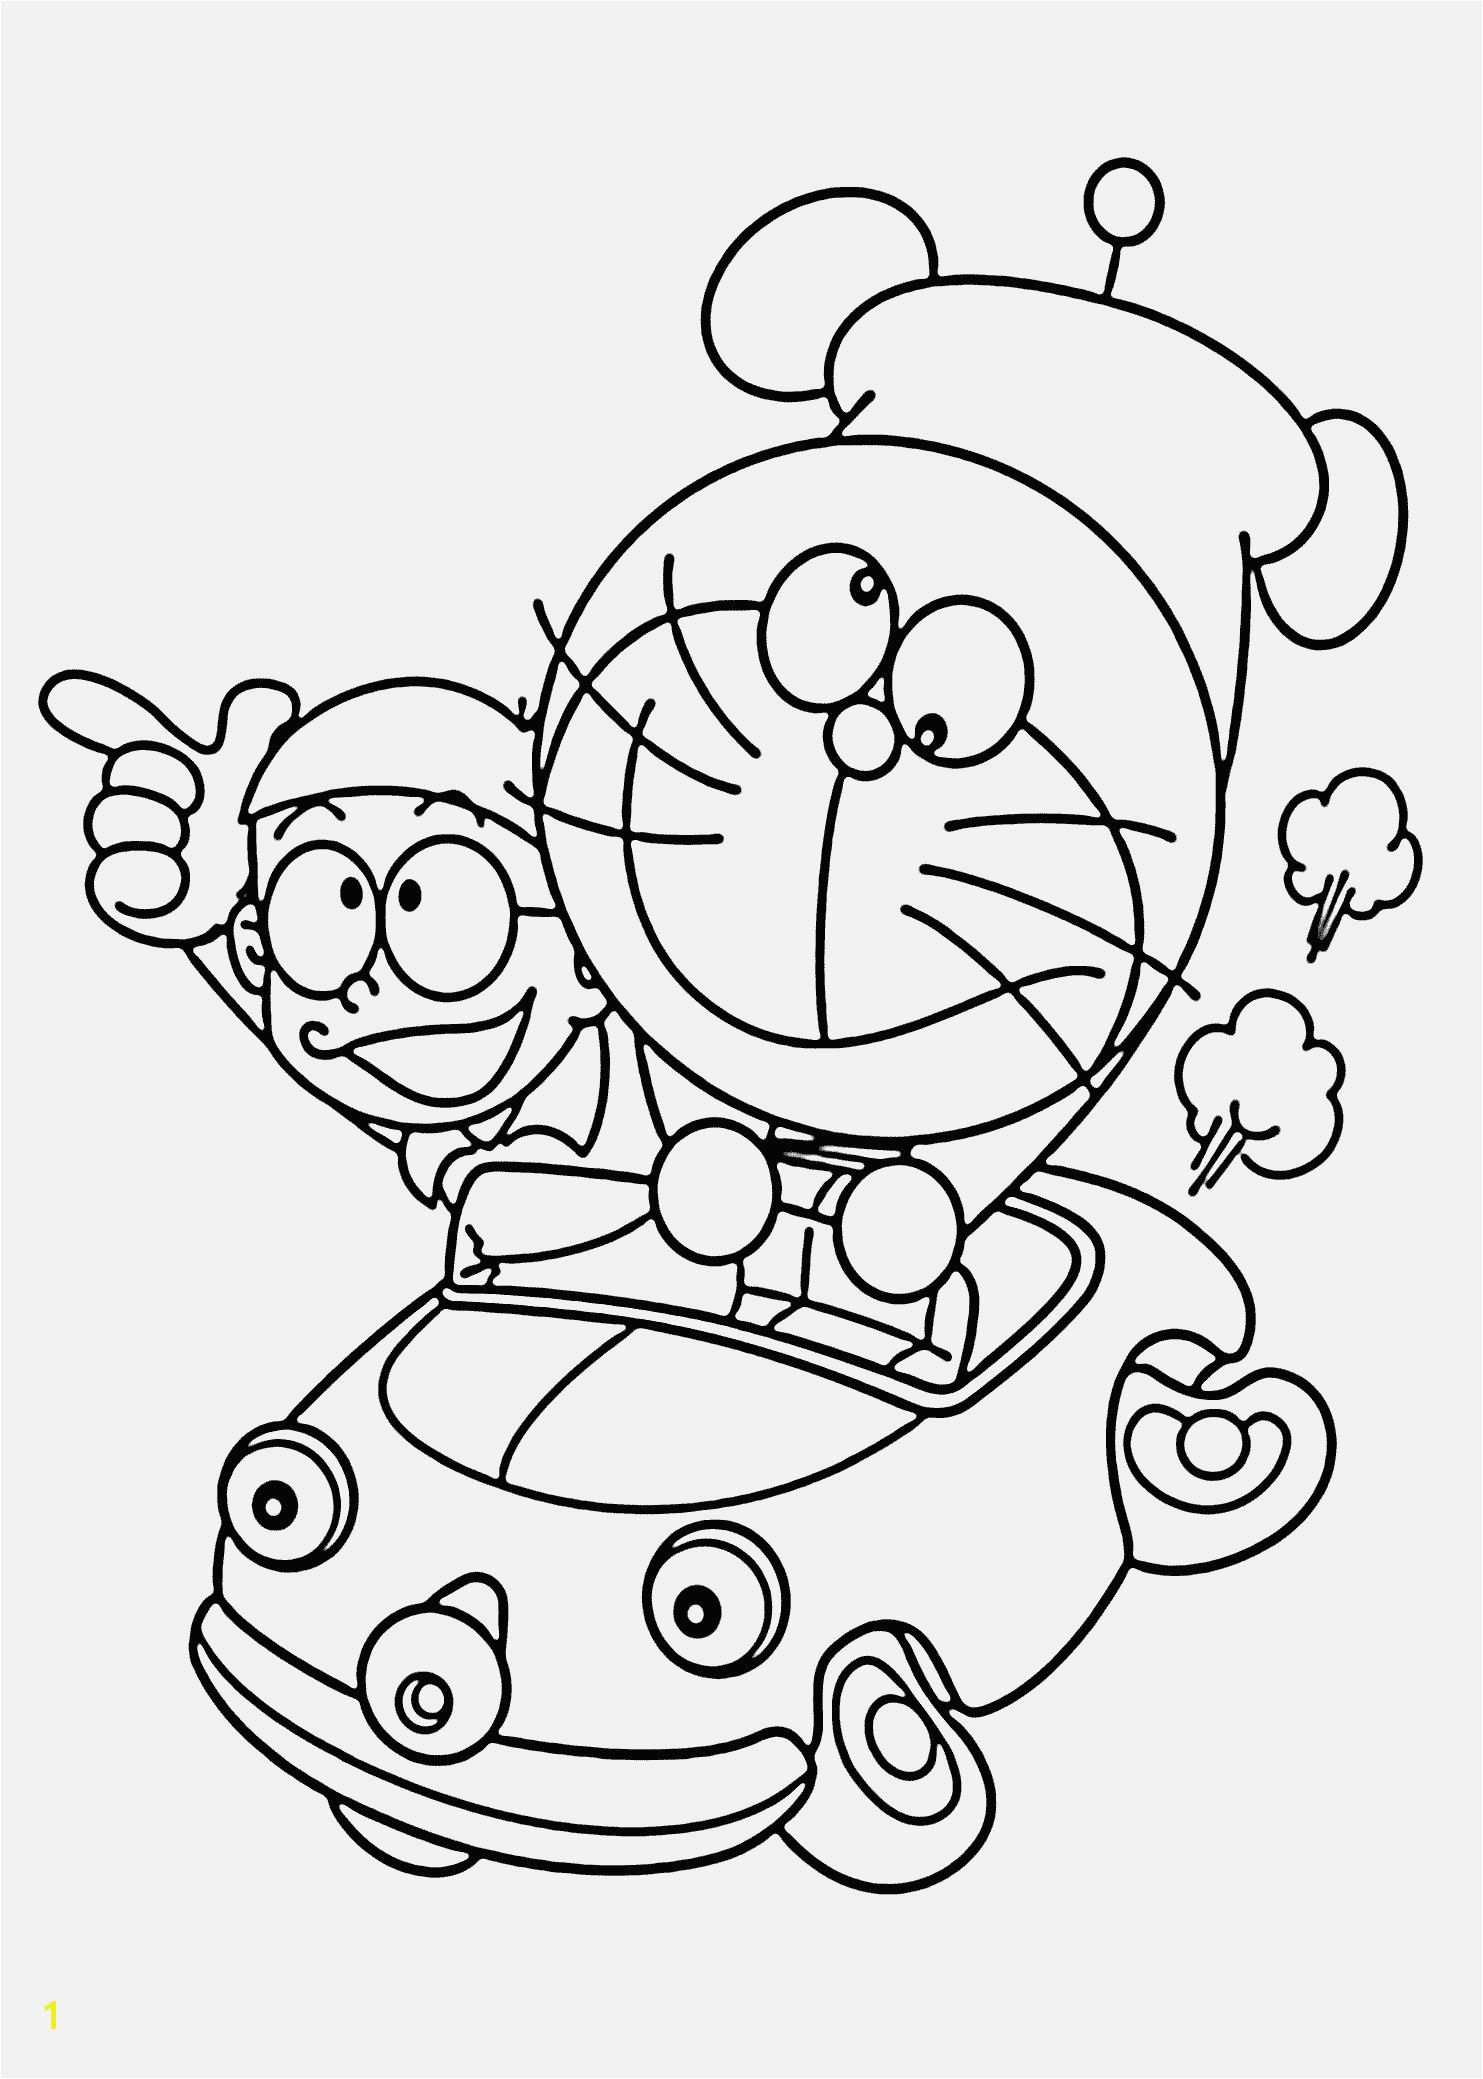 Barney Coloring Pages Amazing Advantages Friendship Coloring Pages Beautiful Inspirational Coloring Pages to